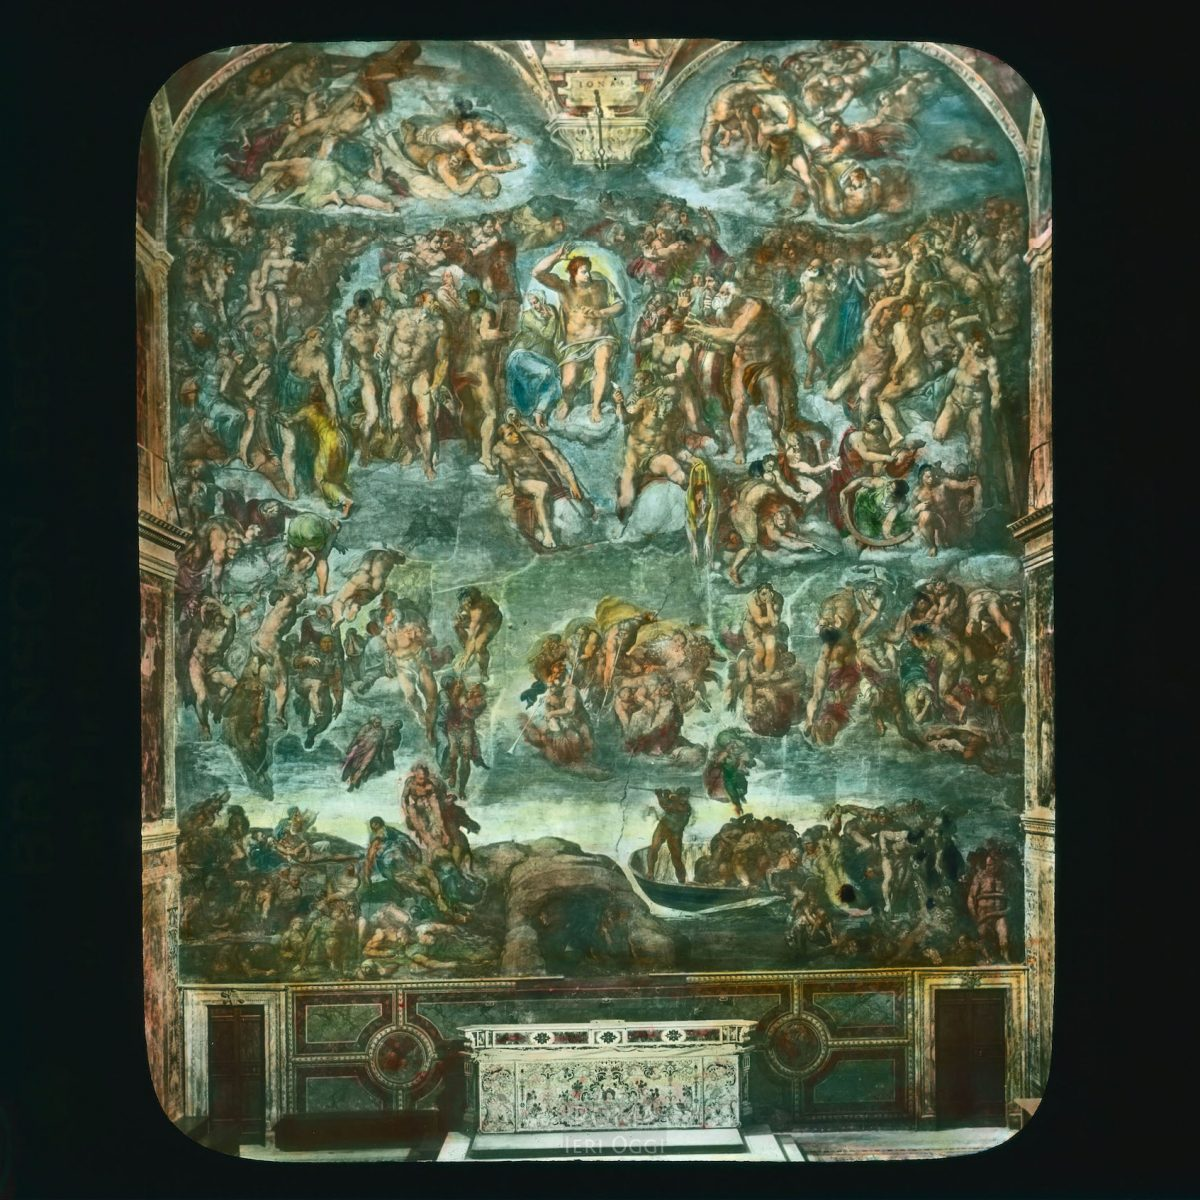 "Vatican City. Sistine Chapel: interior, with Michelangelo's ""Last Judgment"" View in tinted lantern slide, ca. 1919-1938. Michelangelo's frescoes date from 1508-1512."